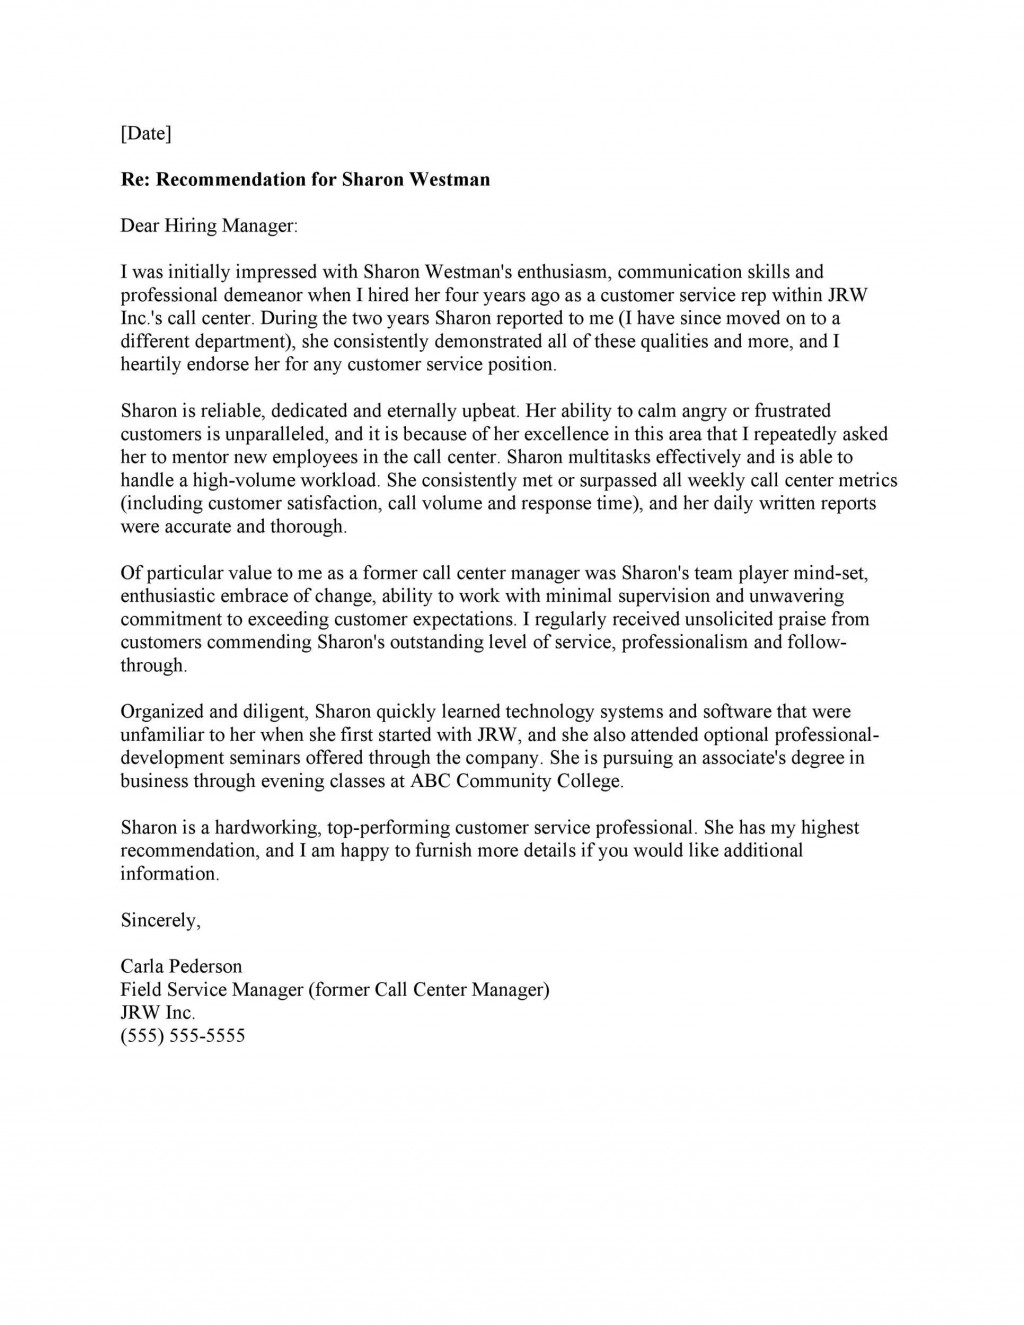 004 Amazing Letter Of Recommendation Template Highest Quality  For Teacher Student From Coach WordLarge